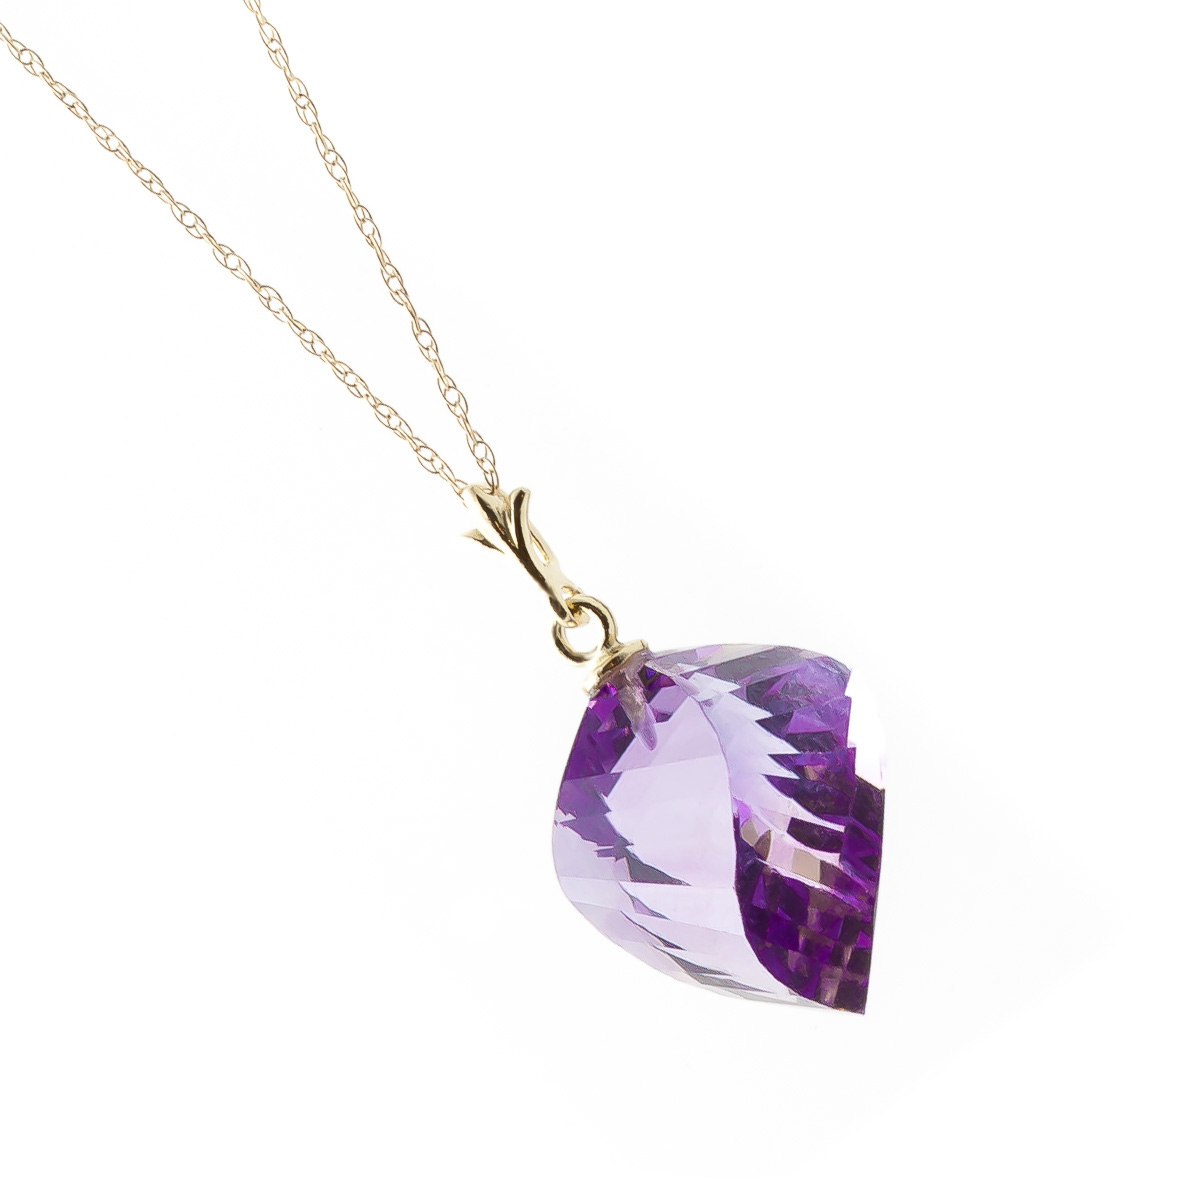 Amethyst Briolette Pendant Necklace 10.75ct in 9ct Gold